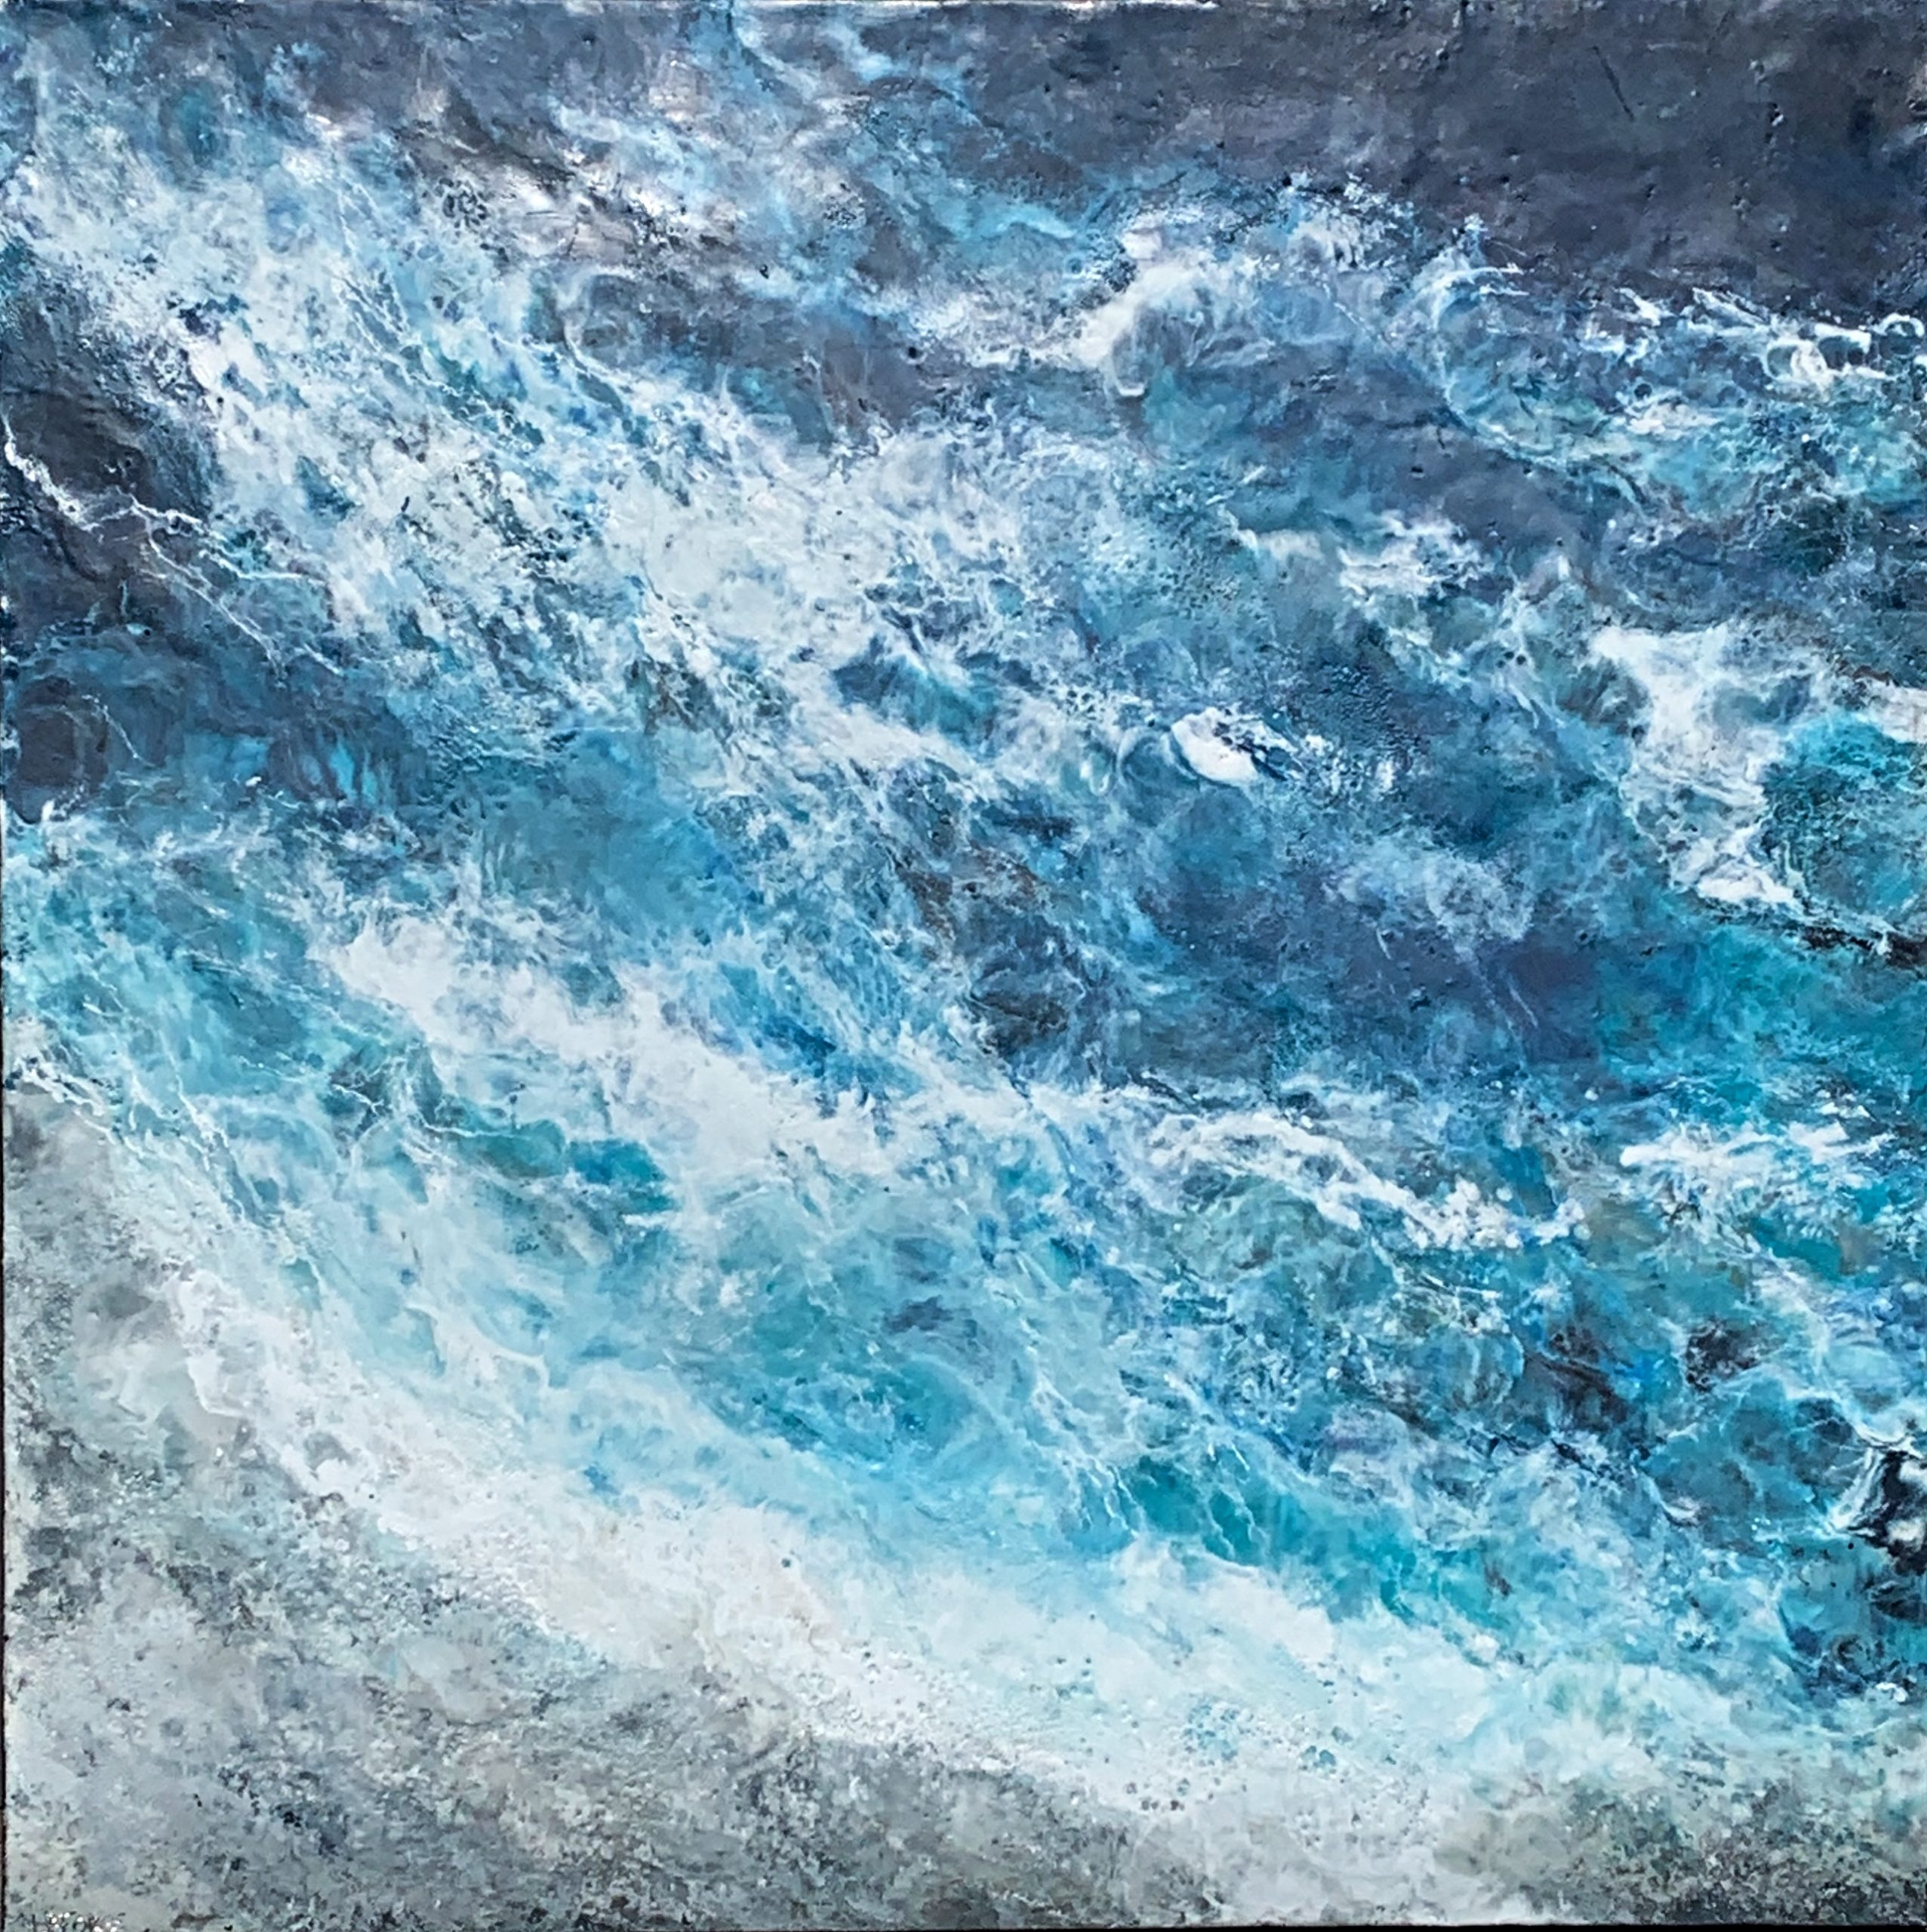 Crashing Waves, encaustic ocean painting by Lee Anne LaForge | Effusion Art Gallery + Cast Glass Studio, Invermere BC